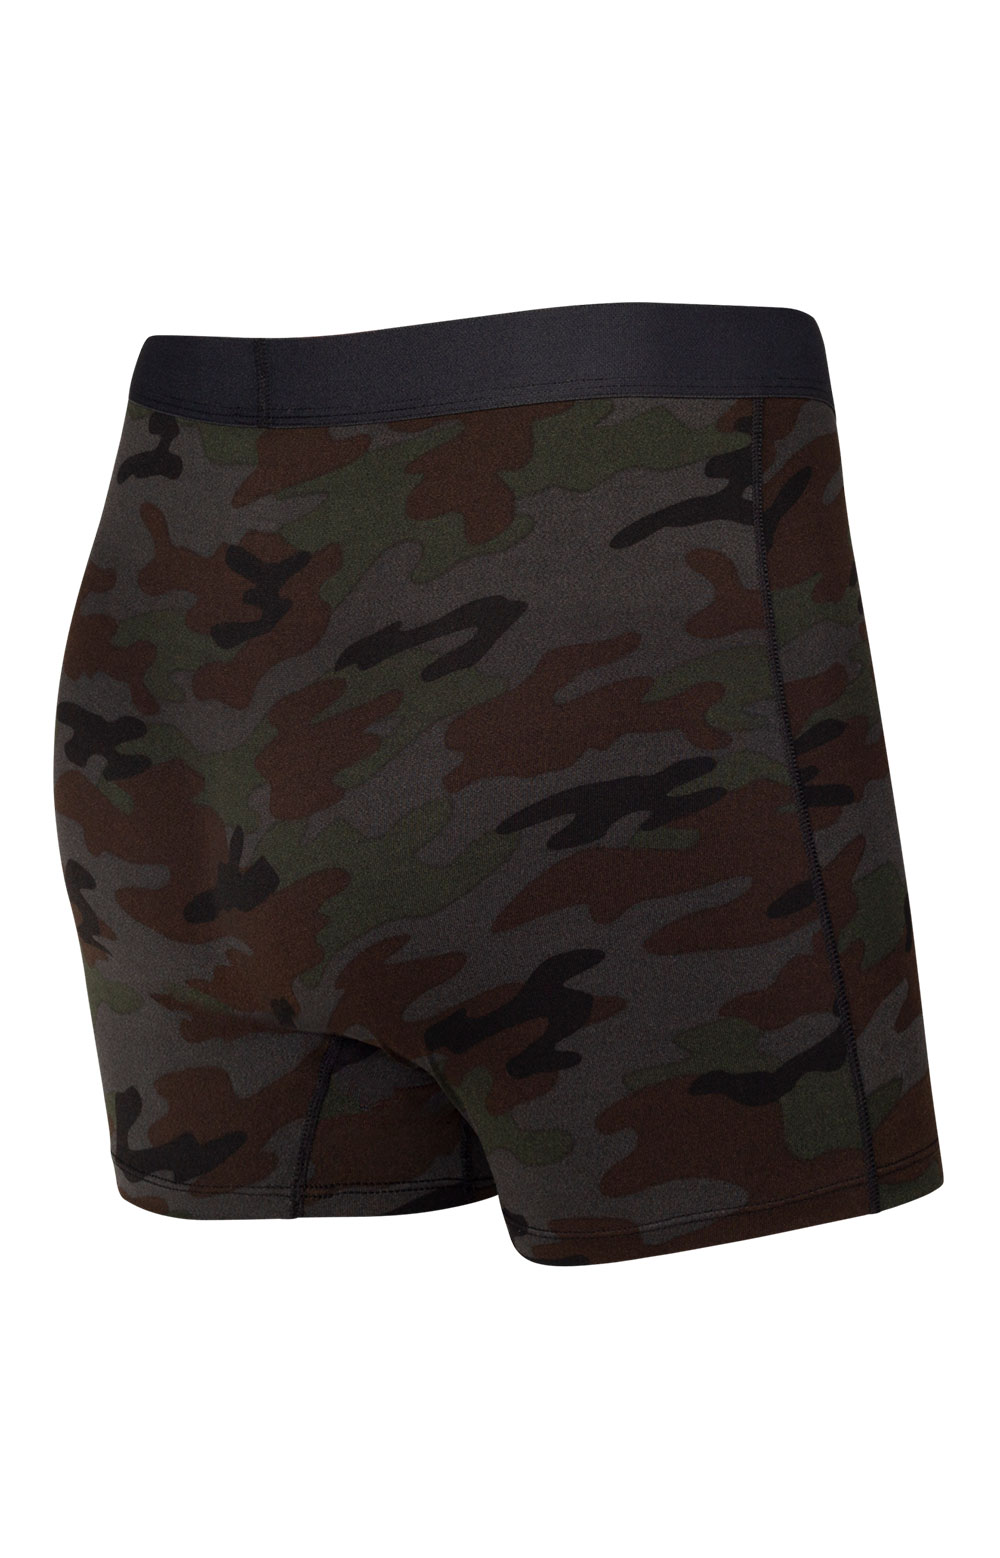 Daytripper Boxer Brief Fly - Black Ops Camo 3